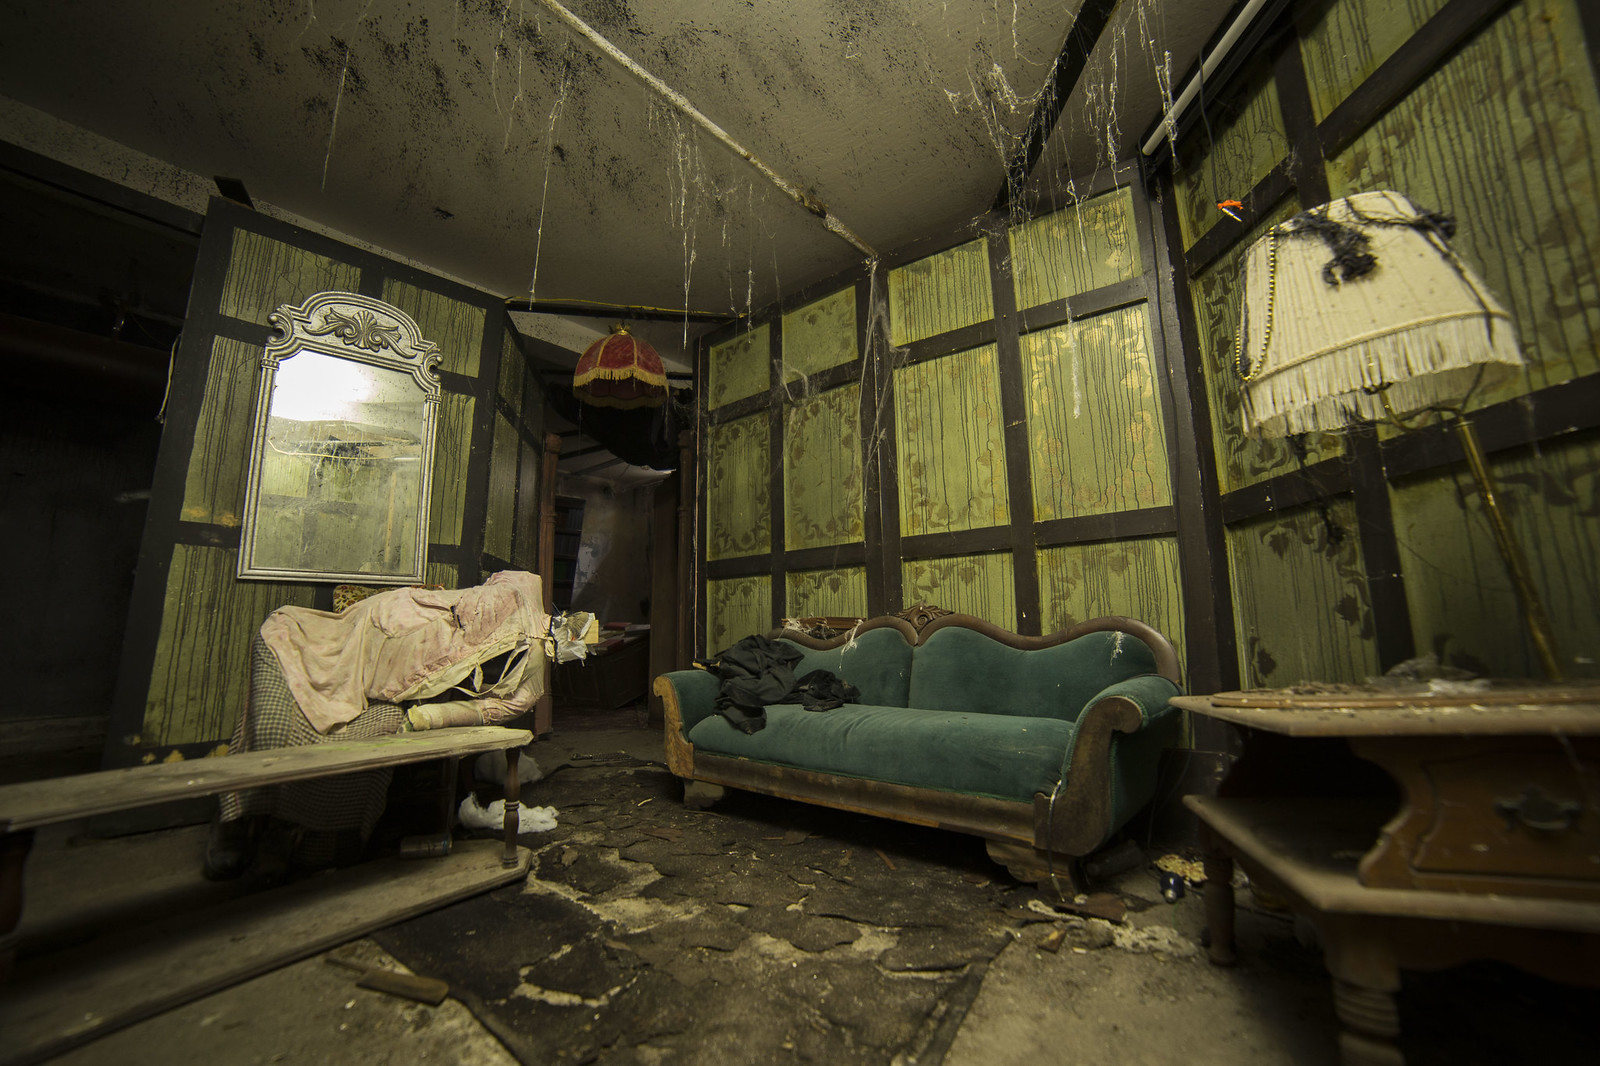 OC A Room In An Abandoned Haunted House The Basement Of High School 1600x1067 Vid Comments